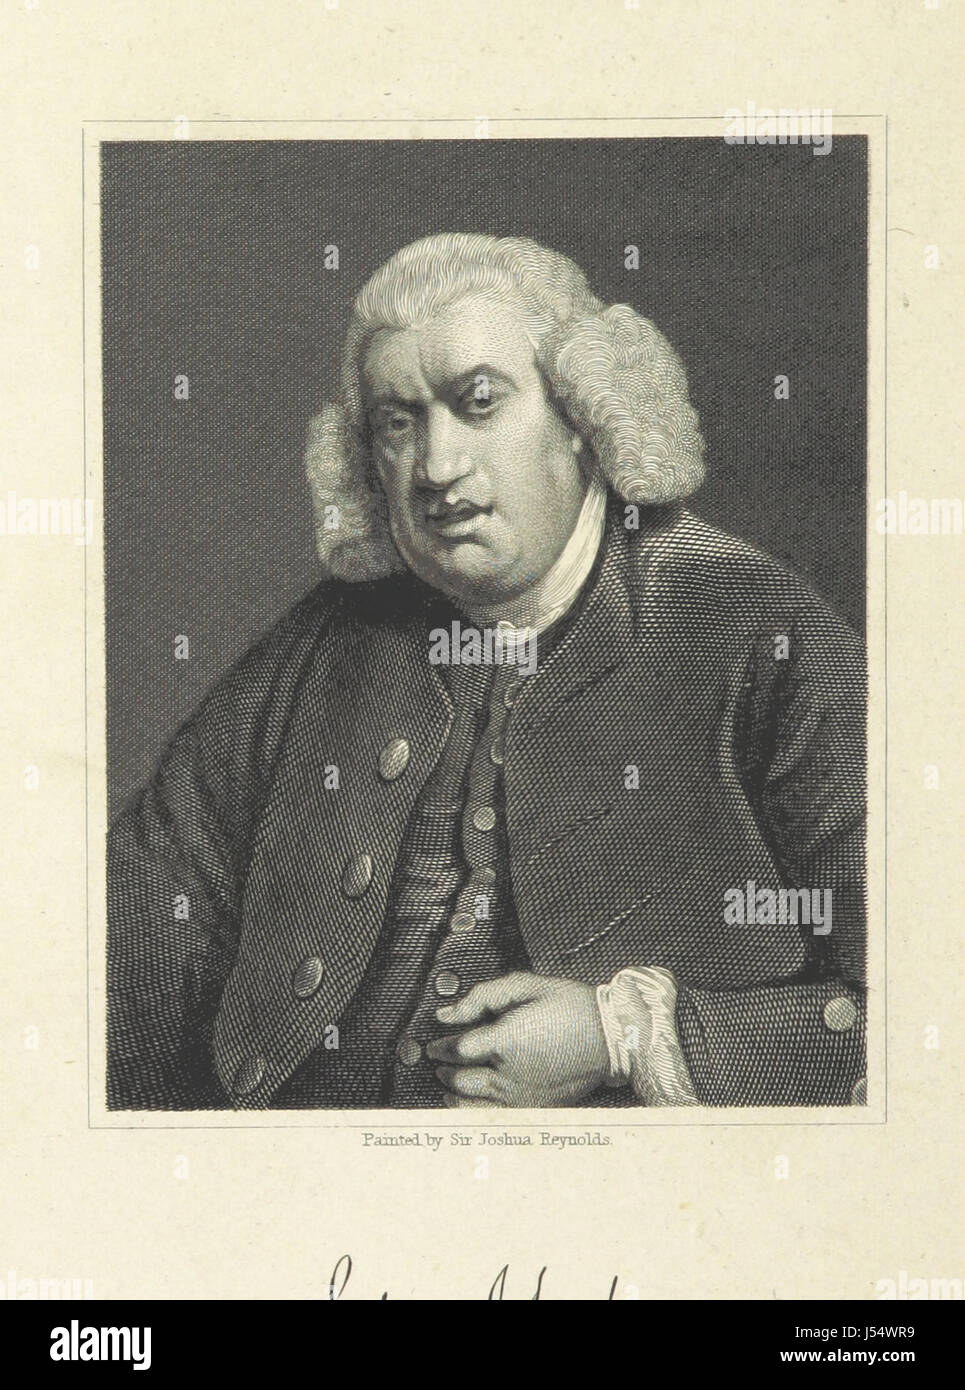 essays of samuel johnson Samuel johnson's escape essay 1298 words | 6 pages samuel johnson's escape samuel johnson, following in the footsteps of other great english critics, was a great poet.